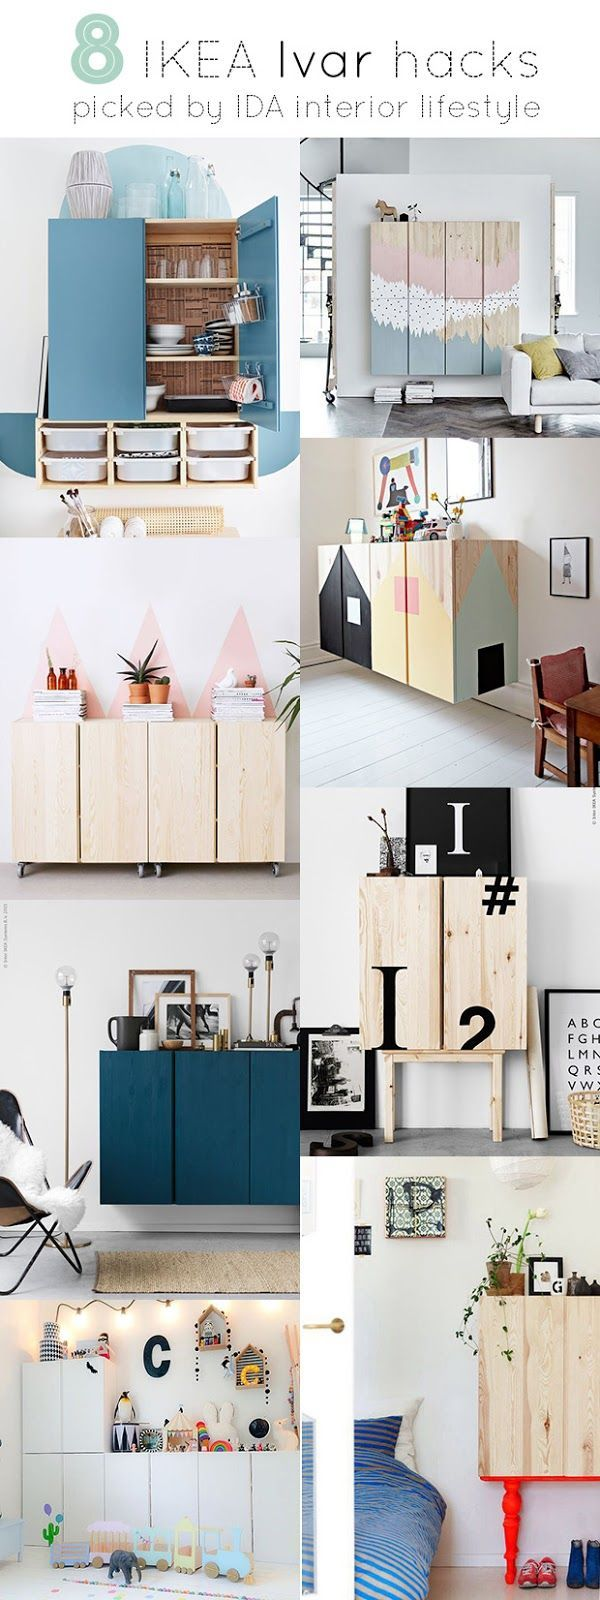 8 ikea ivar hacks barnrum inredning och f r hemmet. Black Bedroom Furniture Sets. Home Design Ideas